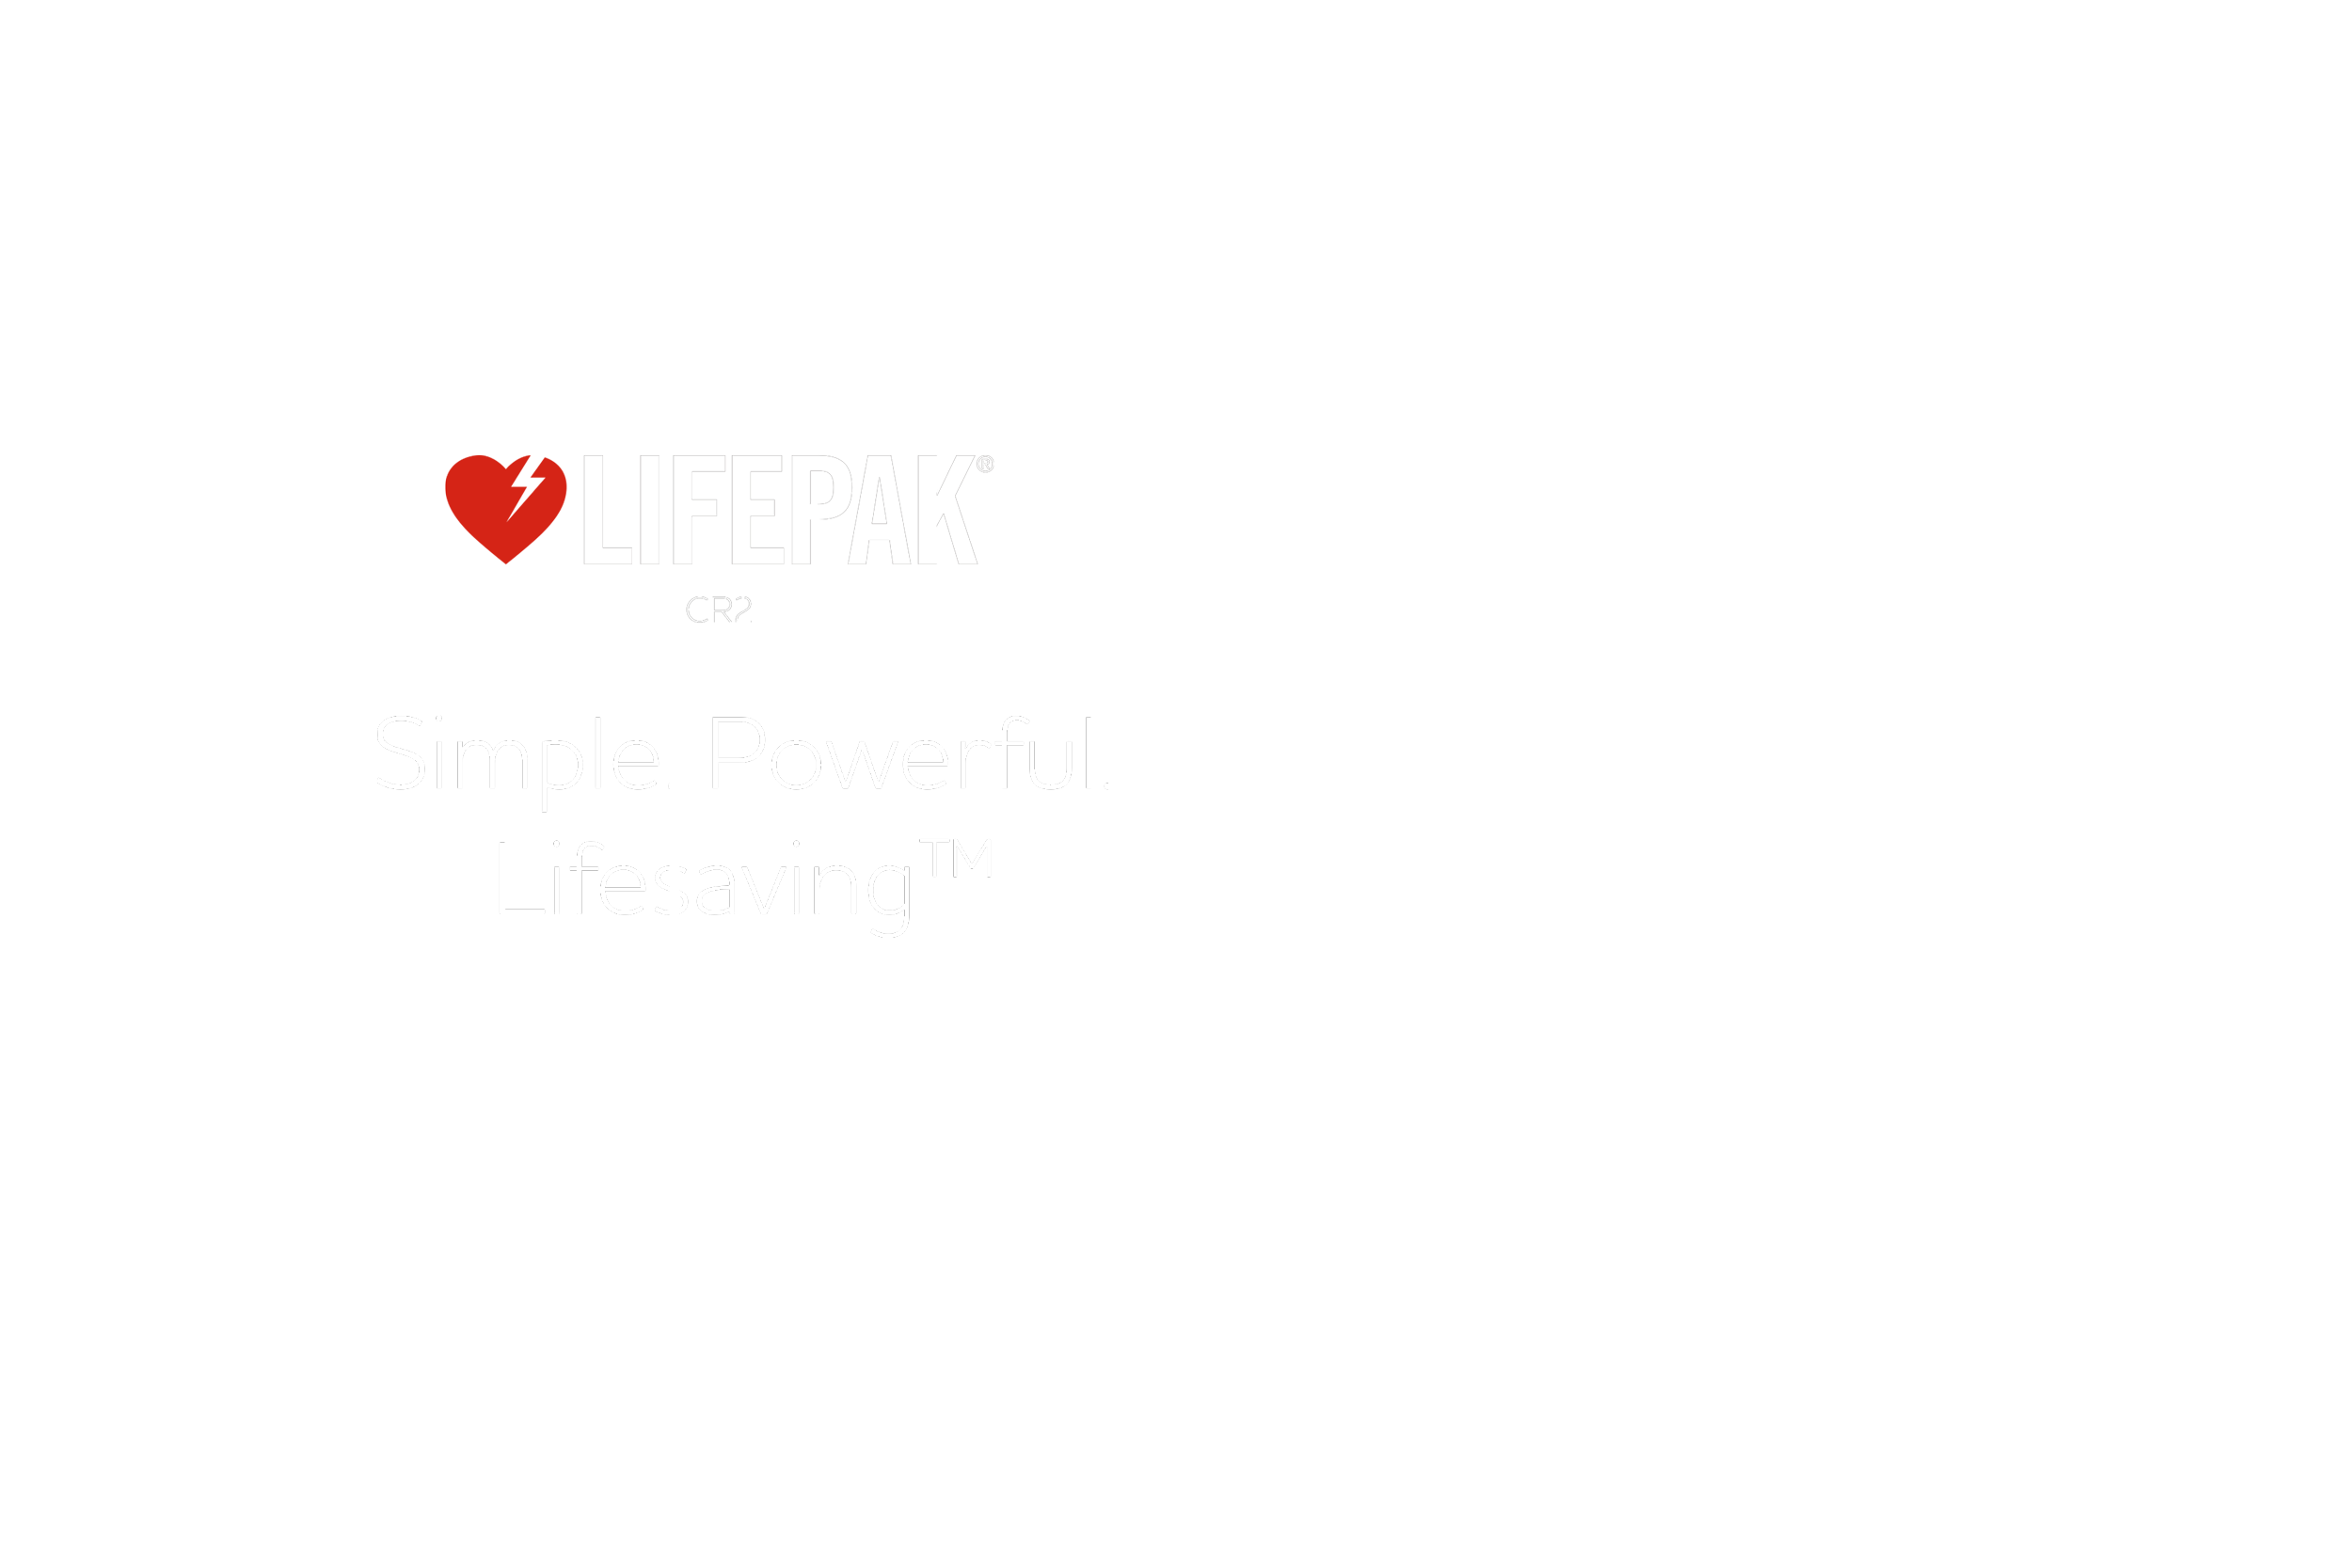 Title Introducing the Lifepak CR2